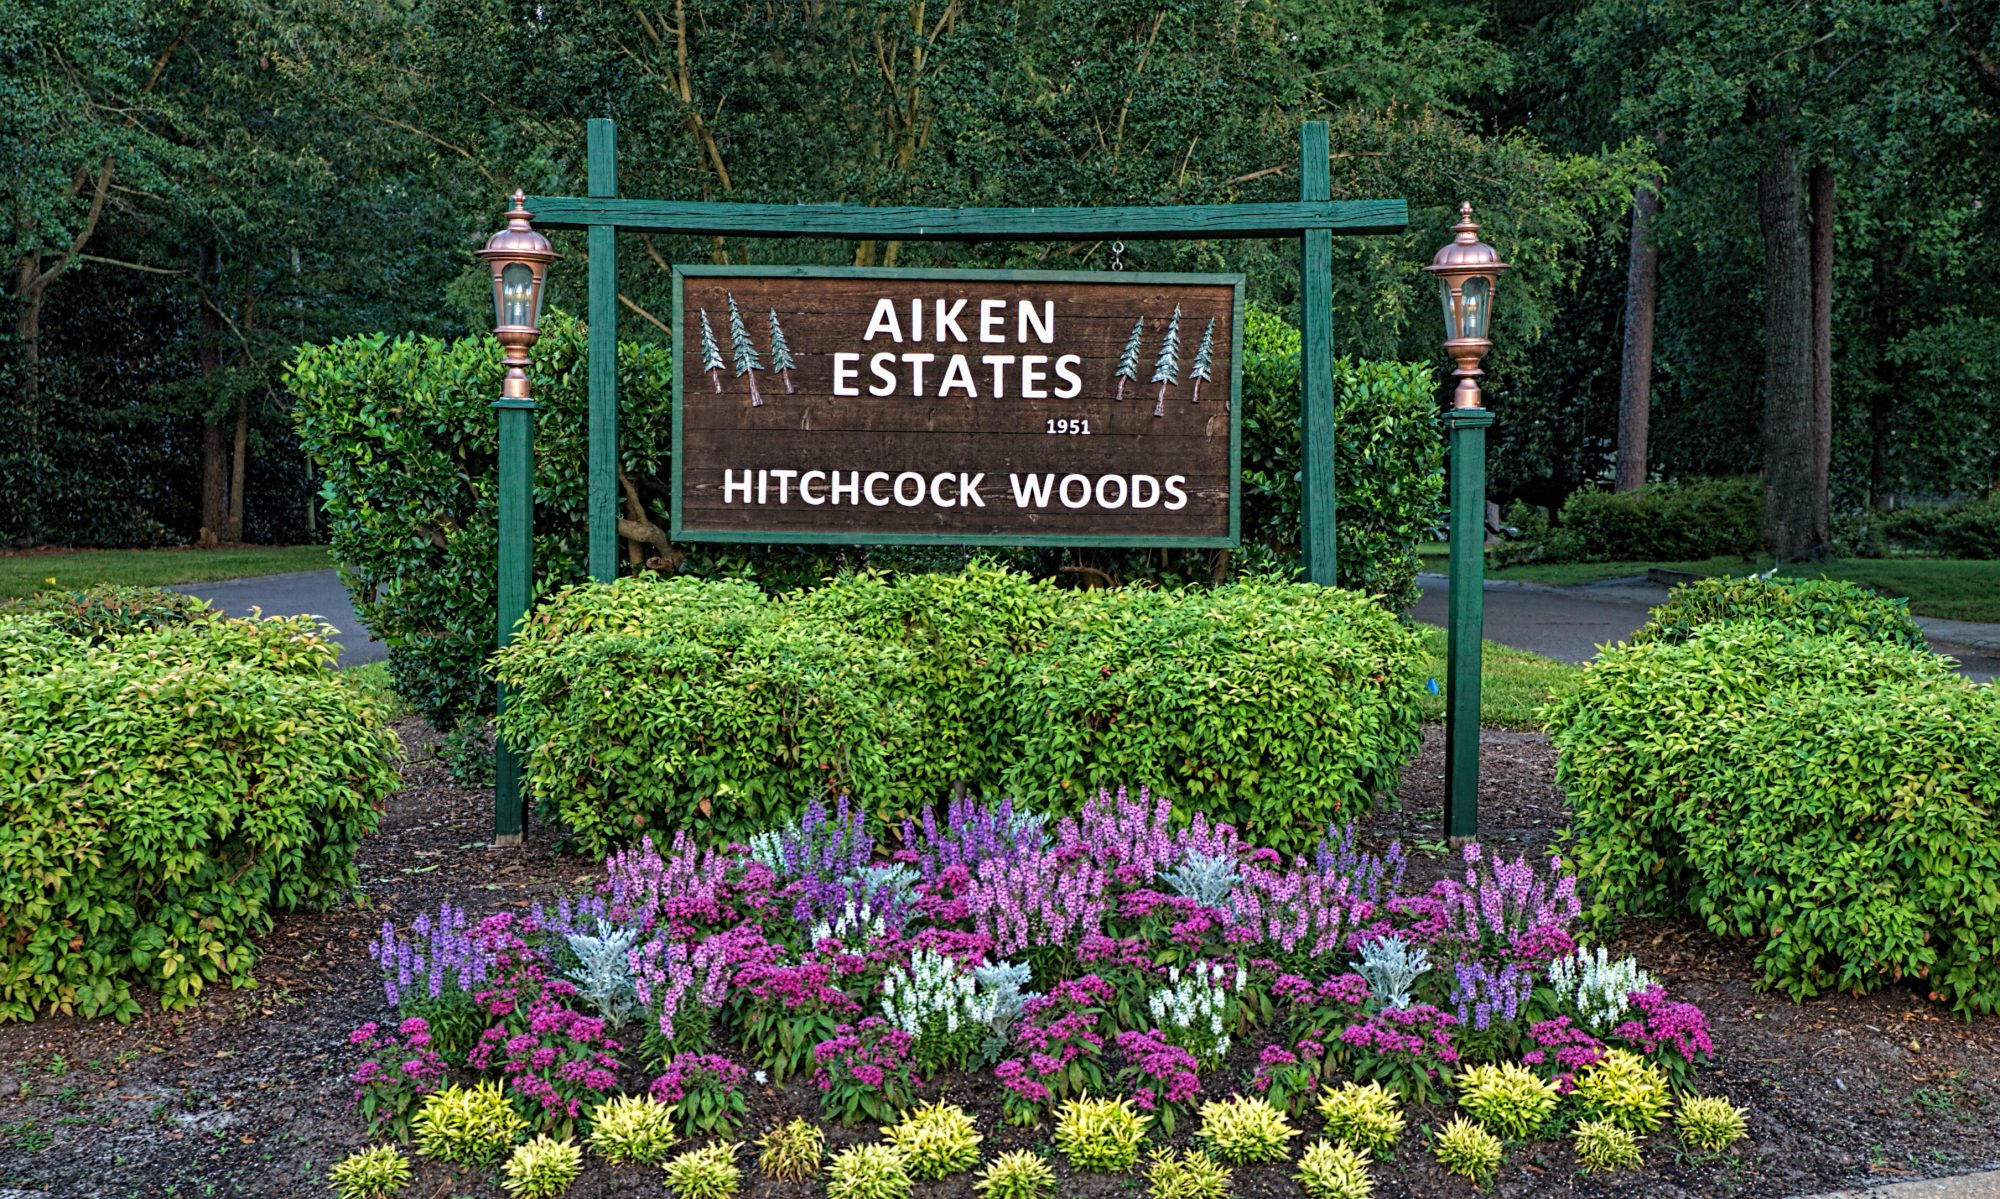 Greater Aiken Estates Neighborhood Association